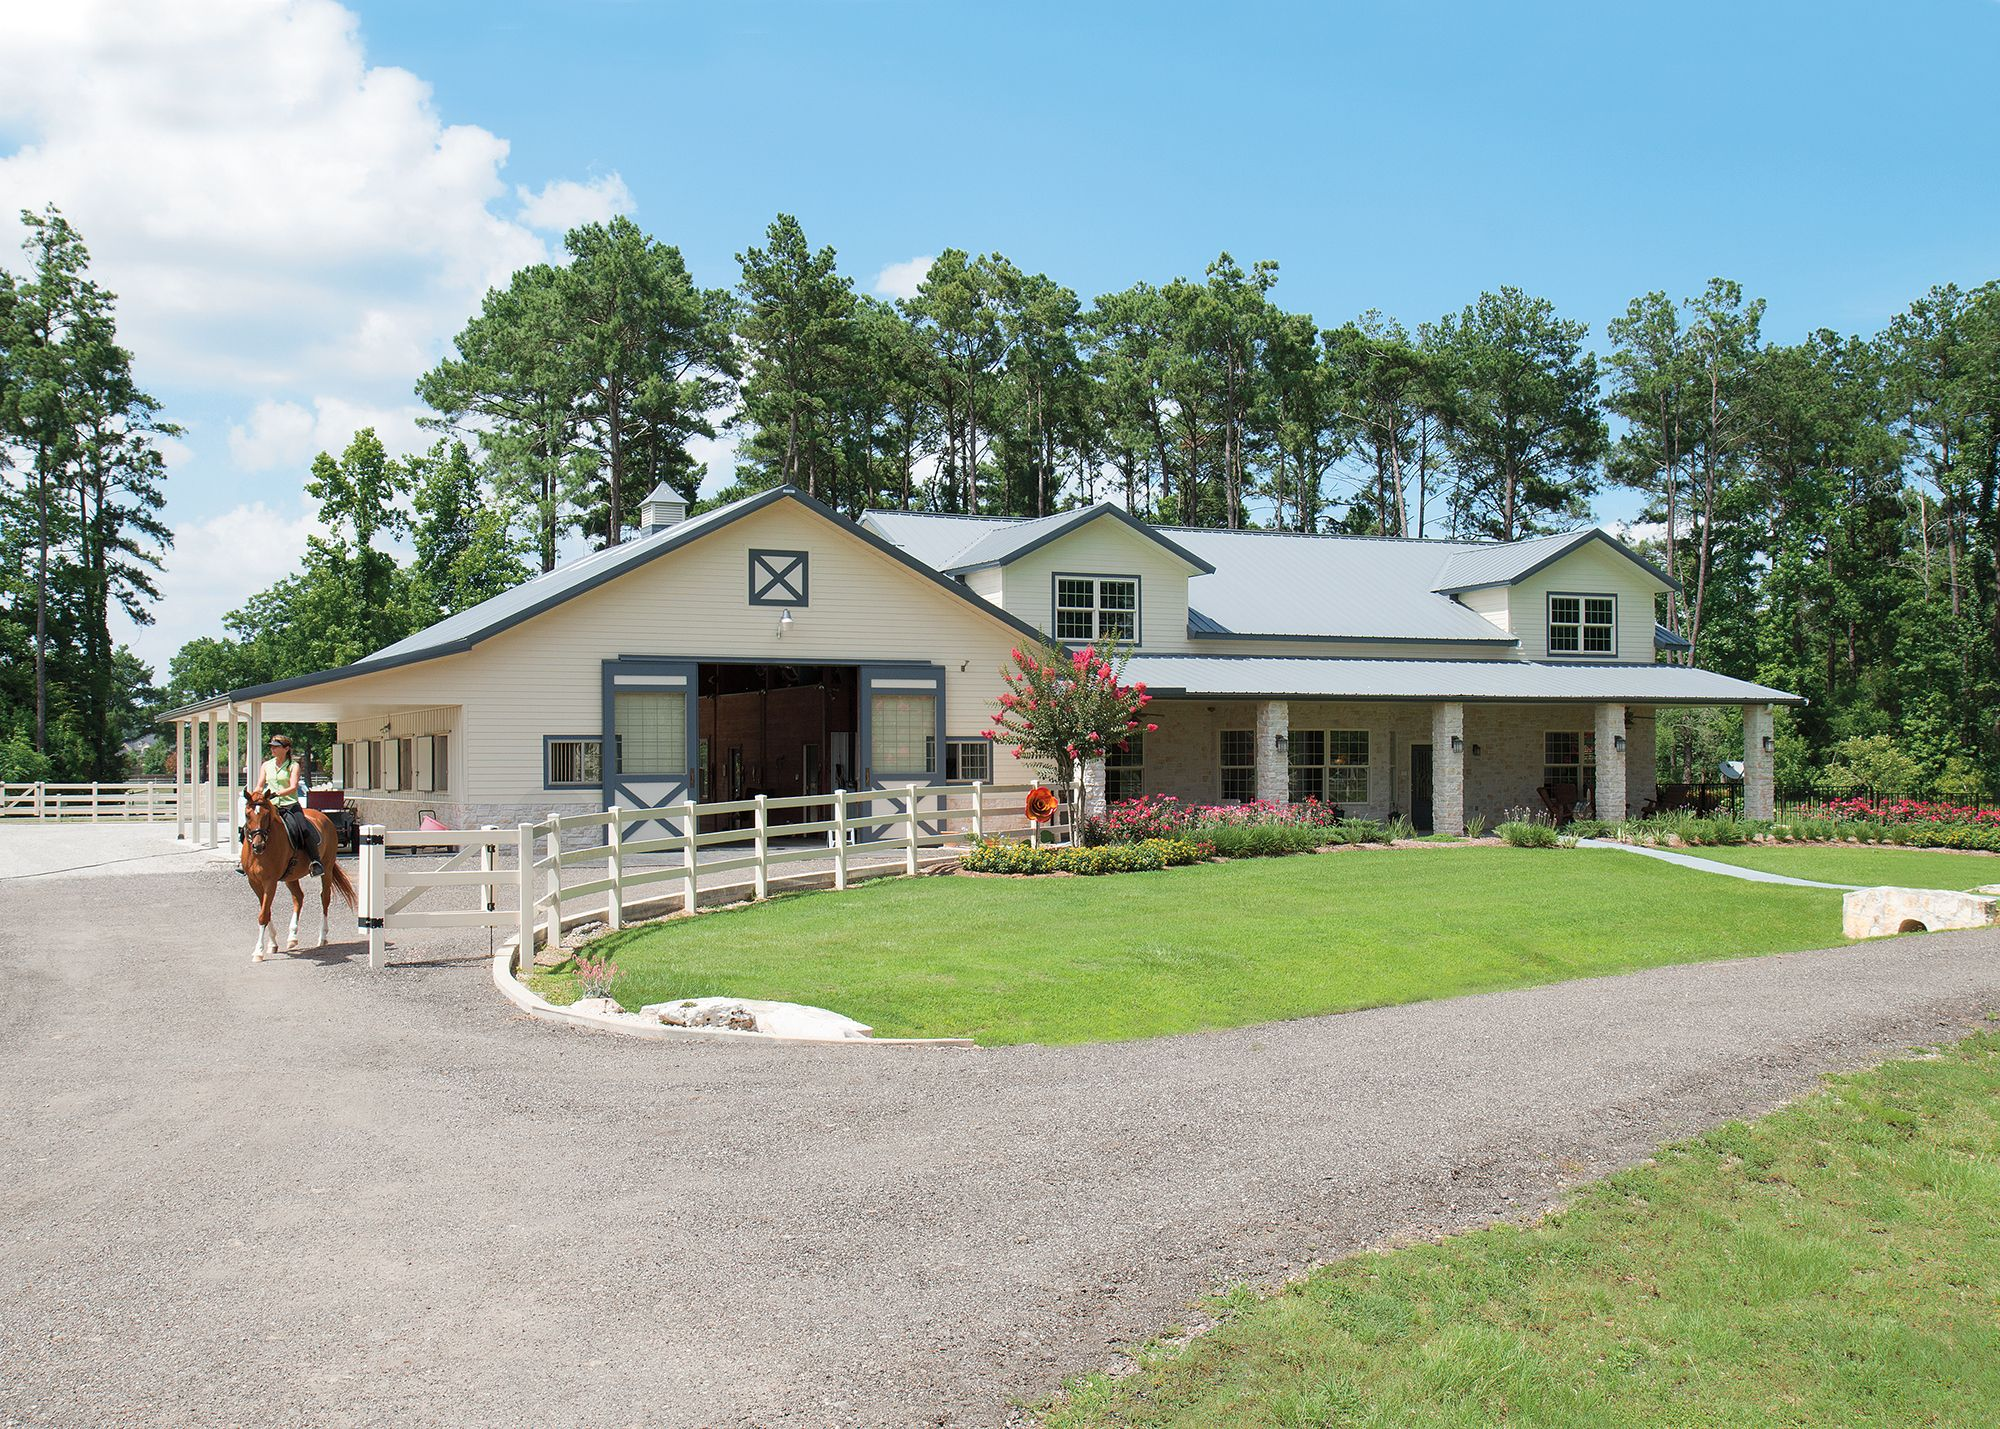 Morton buildings horse barn with attached residence in for House horse barn plans